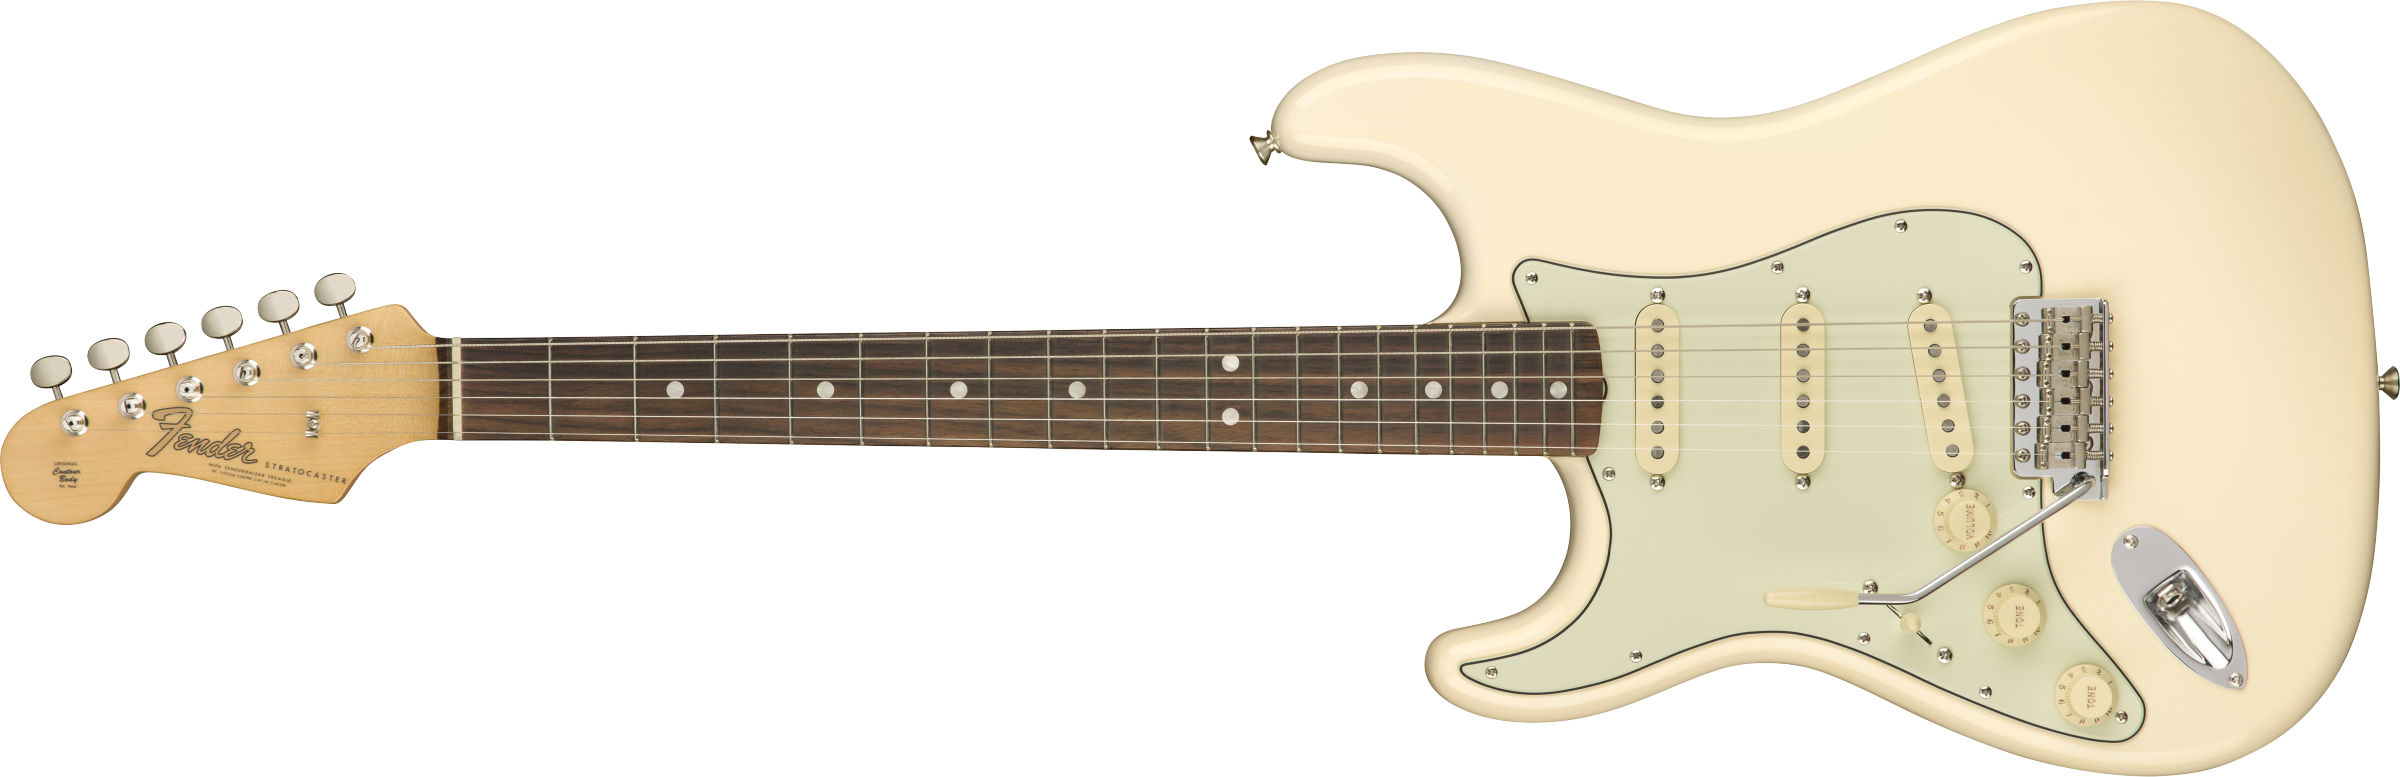 FENDER American Original 60s Stratocaster Left-Hand, Rosewood Fingerboard, Olympic White